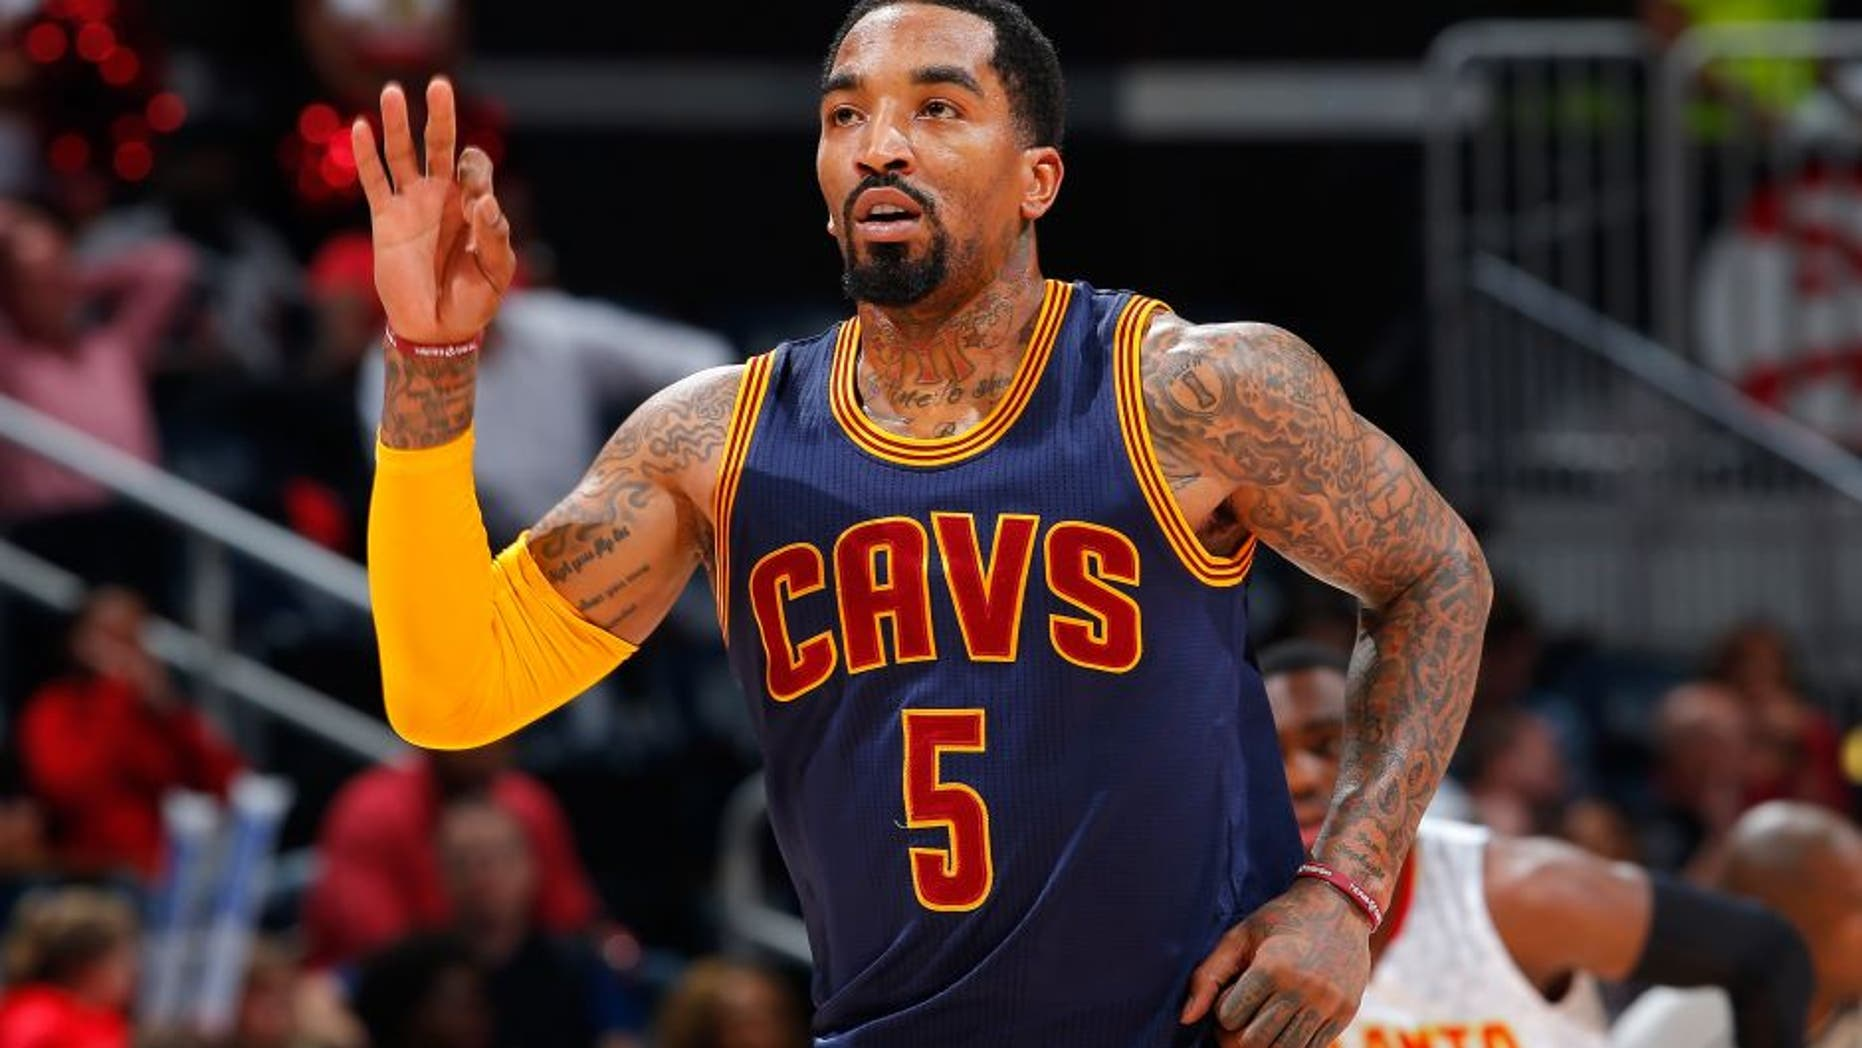 ATLANTA, GEORGIA - APRIL 01: J.R. Smith #5 of the Cleveland Cavaliers reacts after hitting a three-point basket against the Atlanta Hawks at Philips Arena on April 1, 2016 in Atlanta, Georgia. NOTE TO USER User expressly acknowledges and agrees that, by downloading and or using this photograph, user is consenting to the terms and conditions of the Getty Images License Agreement. (Photo by Kevin C. Cox/Getty Images)